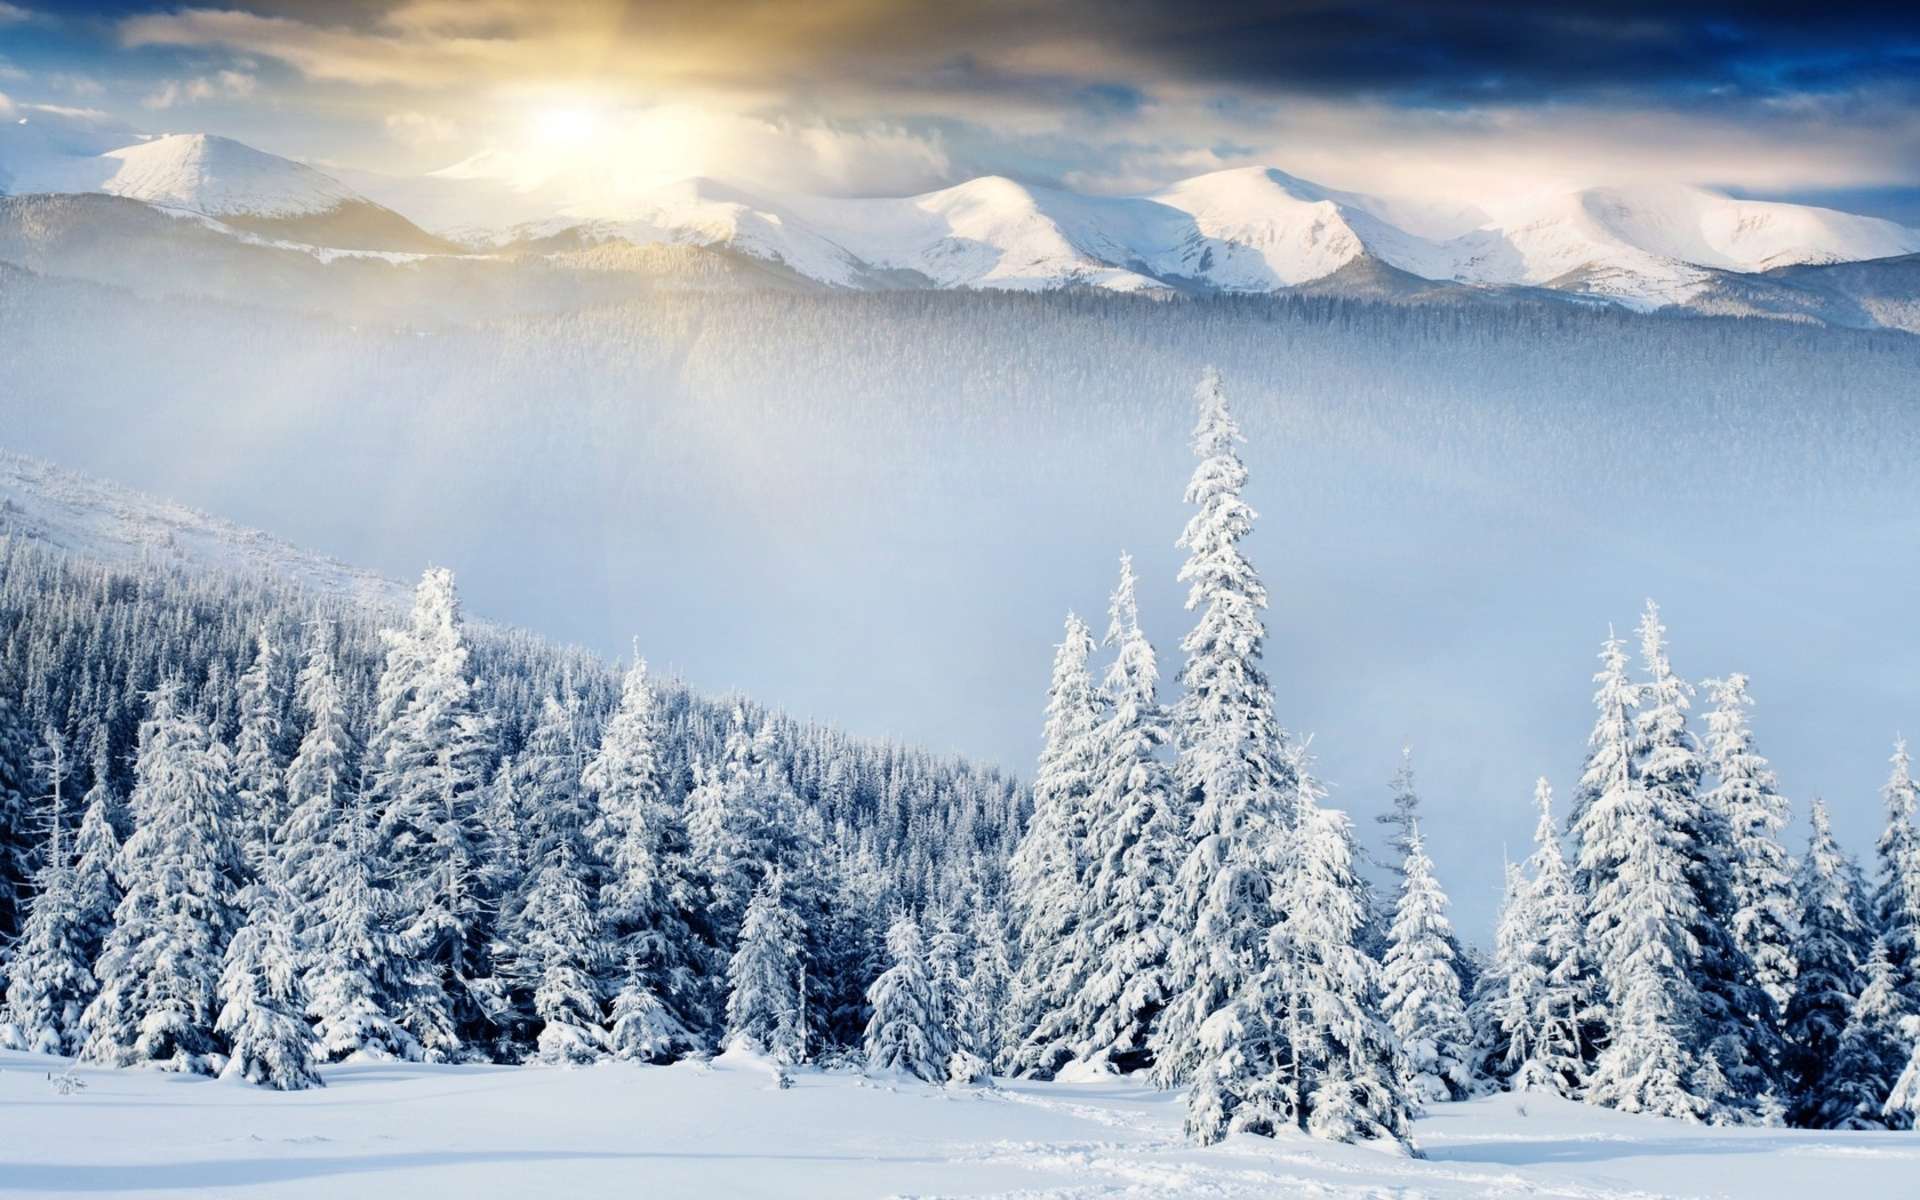 snow scenery full hd - photo #43